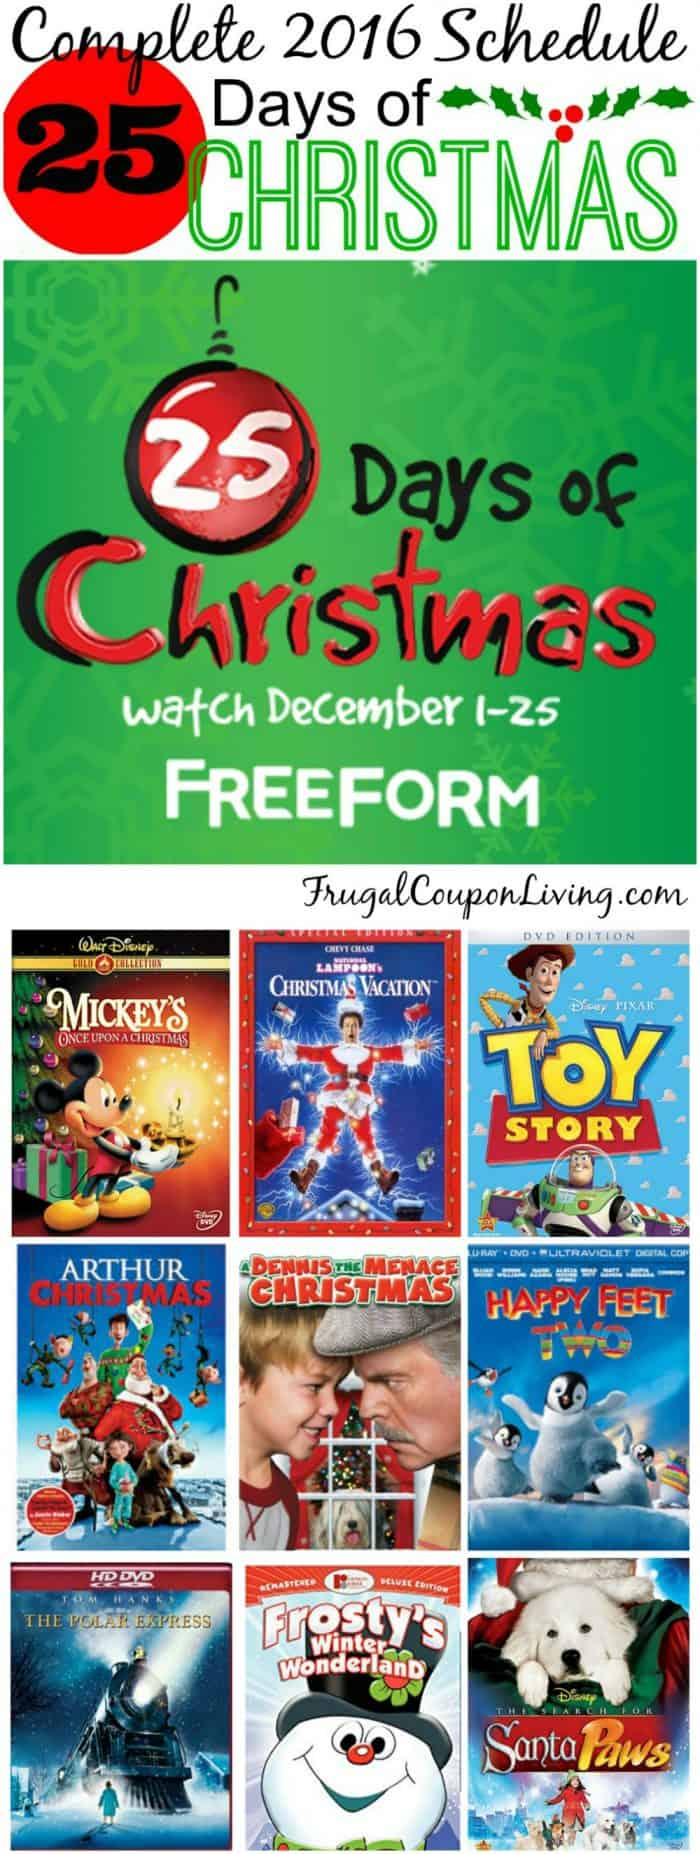 2016 freeform 25 days of christmas abc family - 25 Days Of Christmas Abc Family